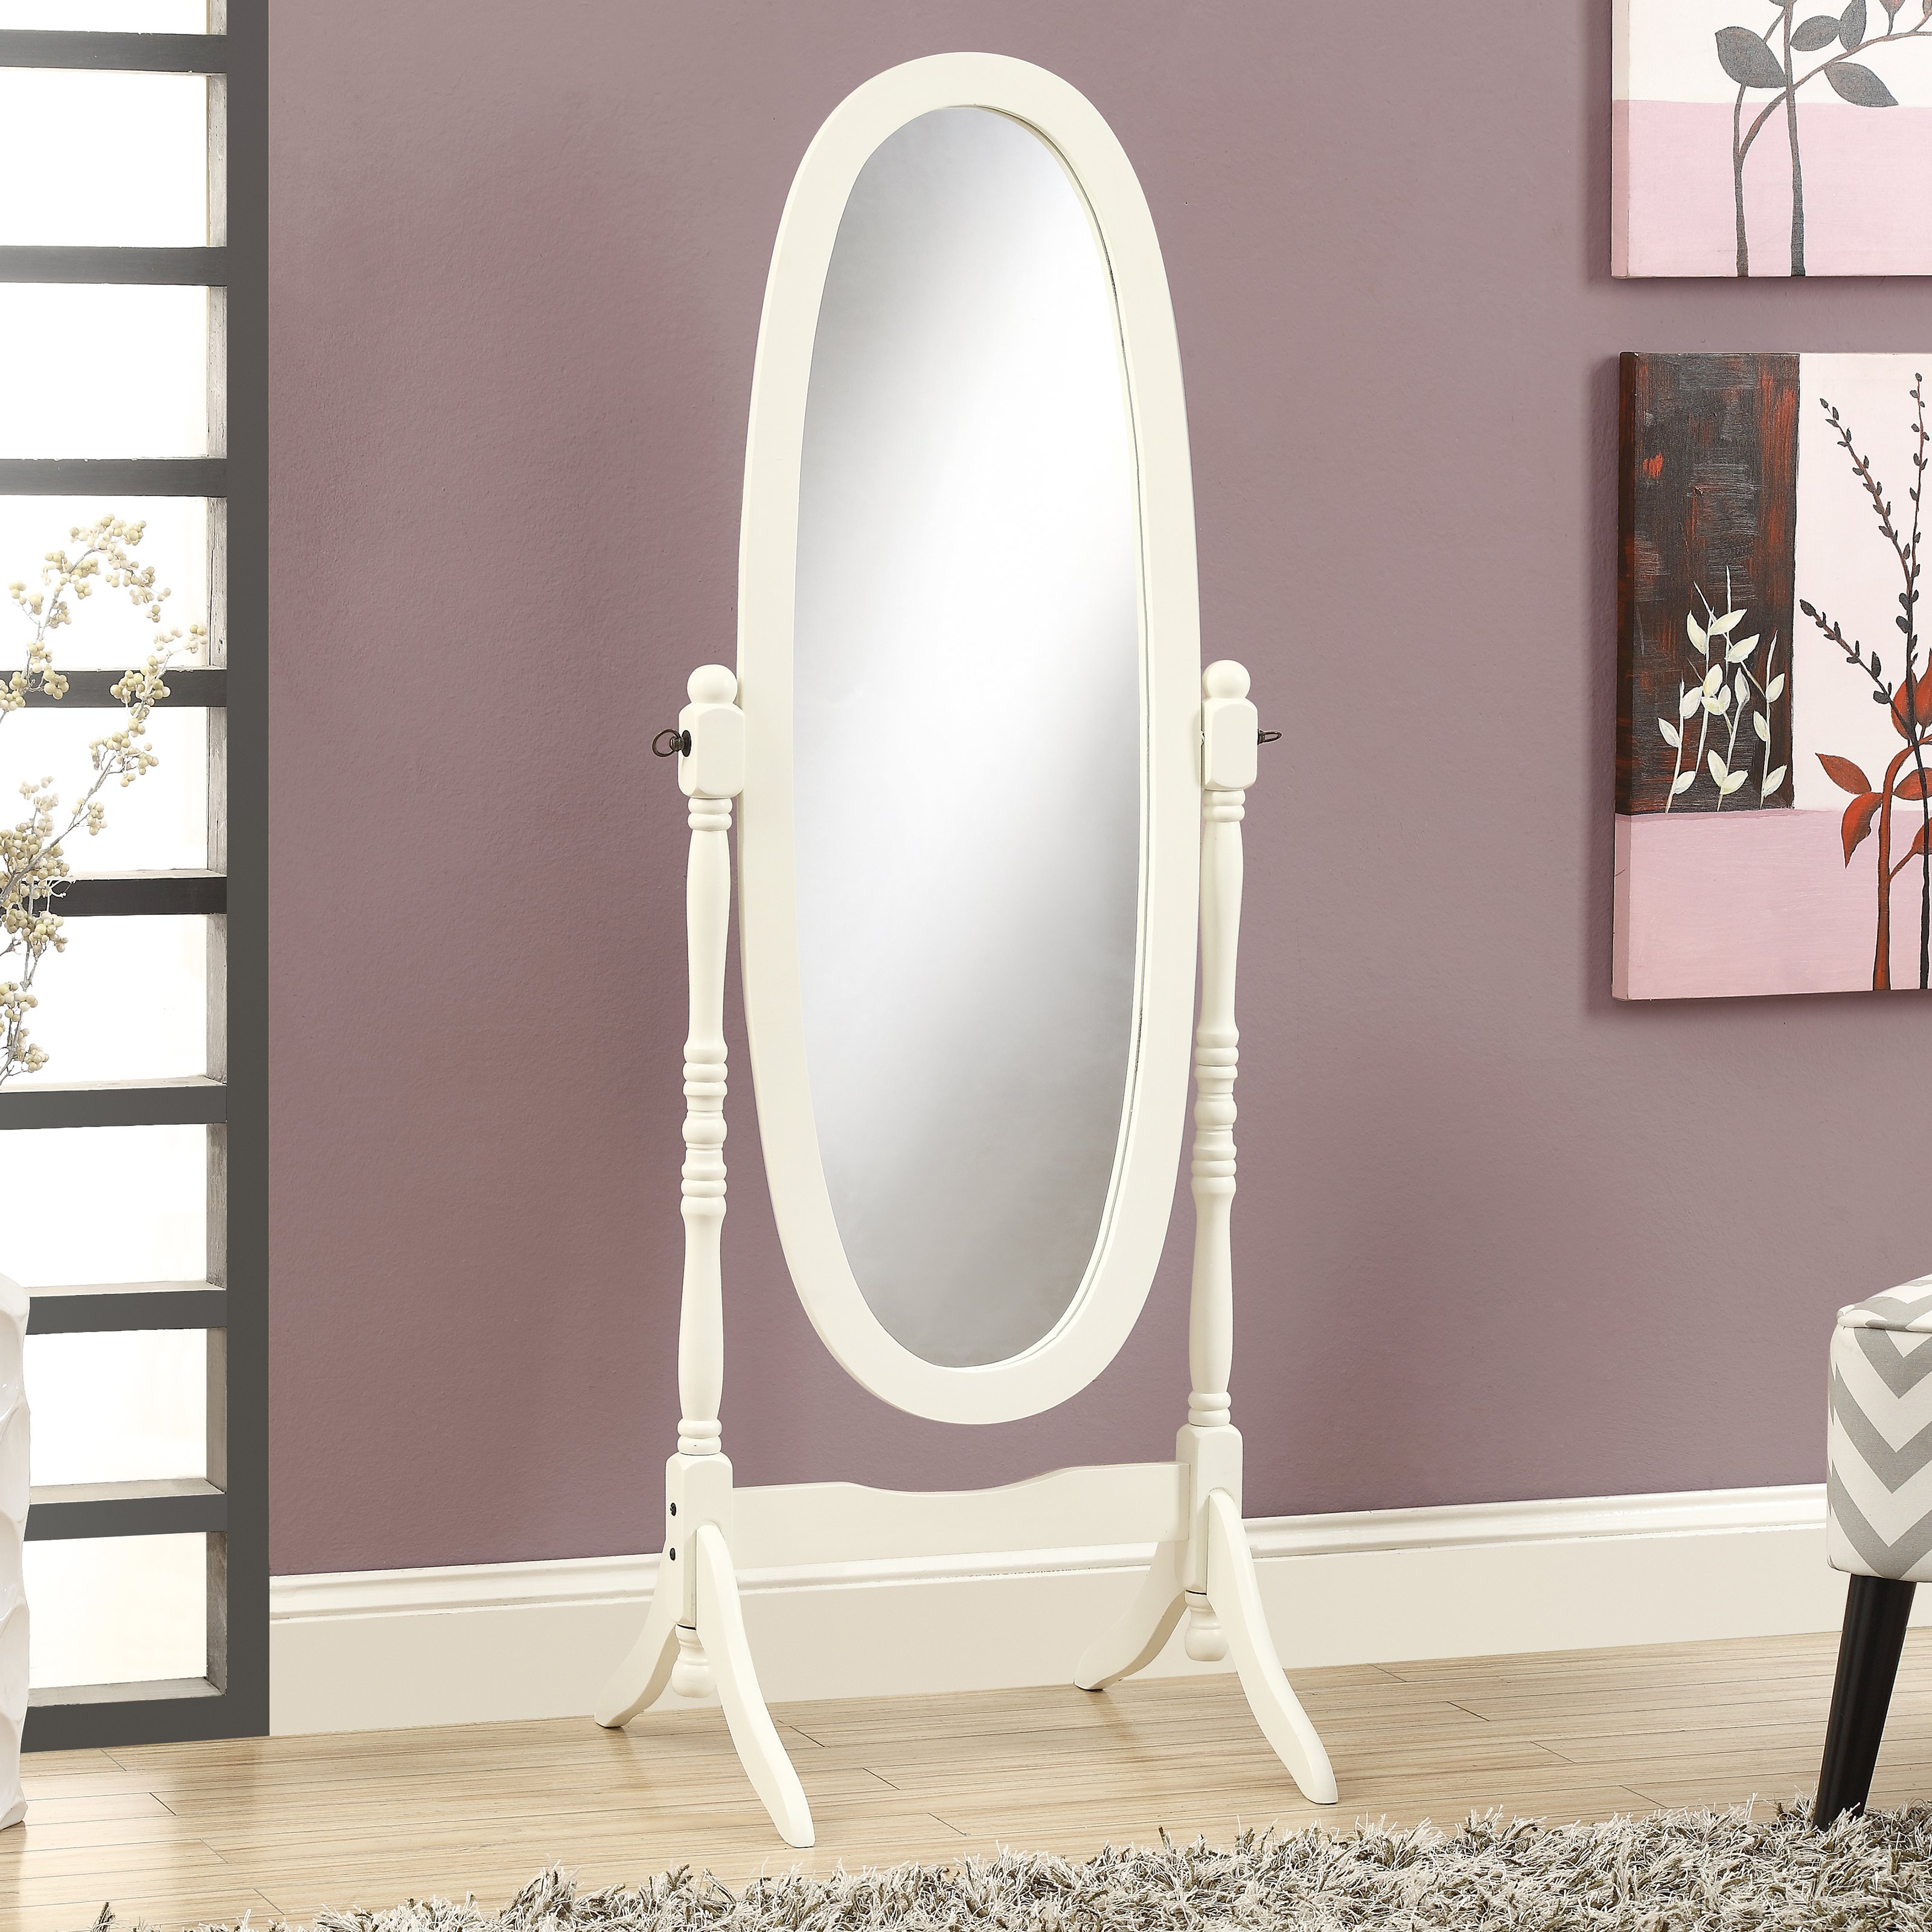 Most Recently Released Ausergewohnlich White Vintage Full Length Wall Mirror Set Pertaining To Full Length Oval Wall Mirrors (View 20 of 20)